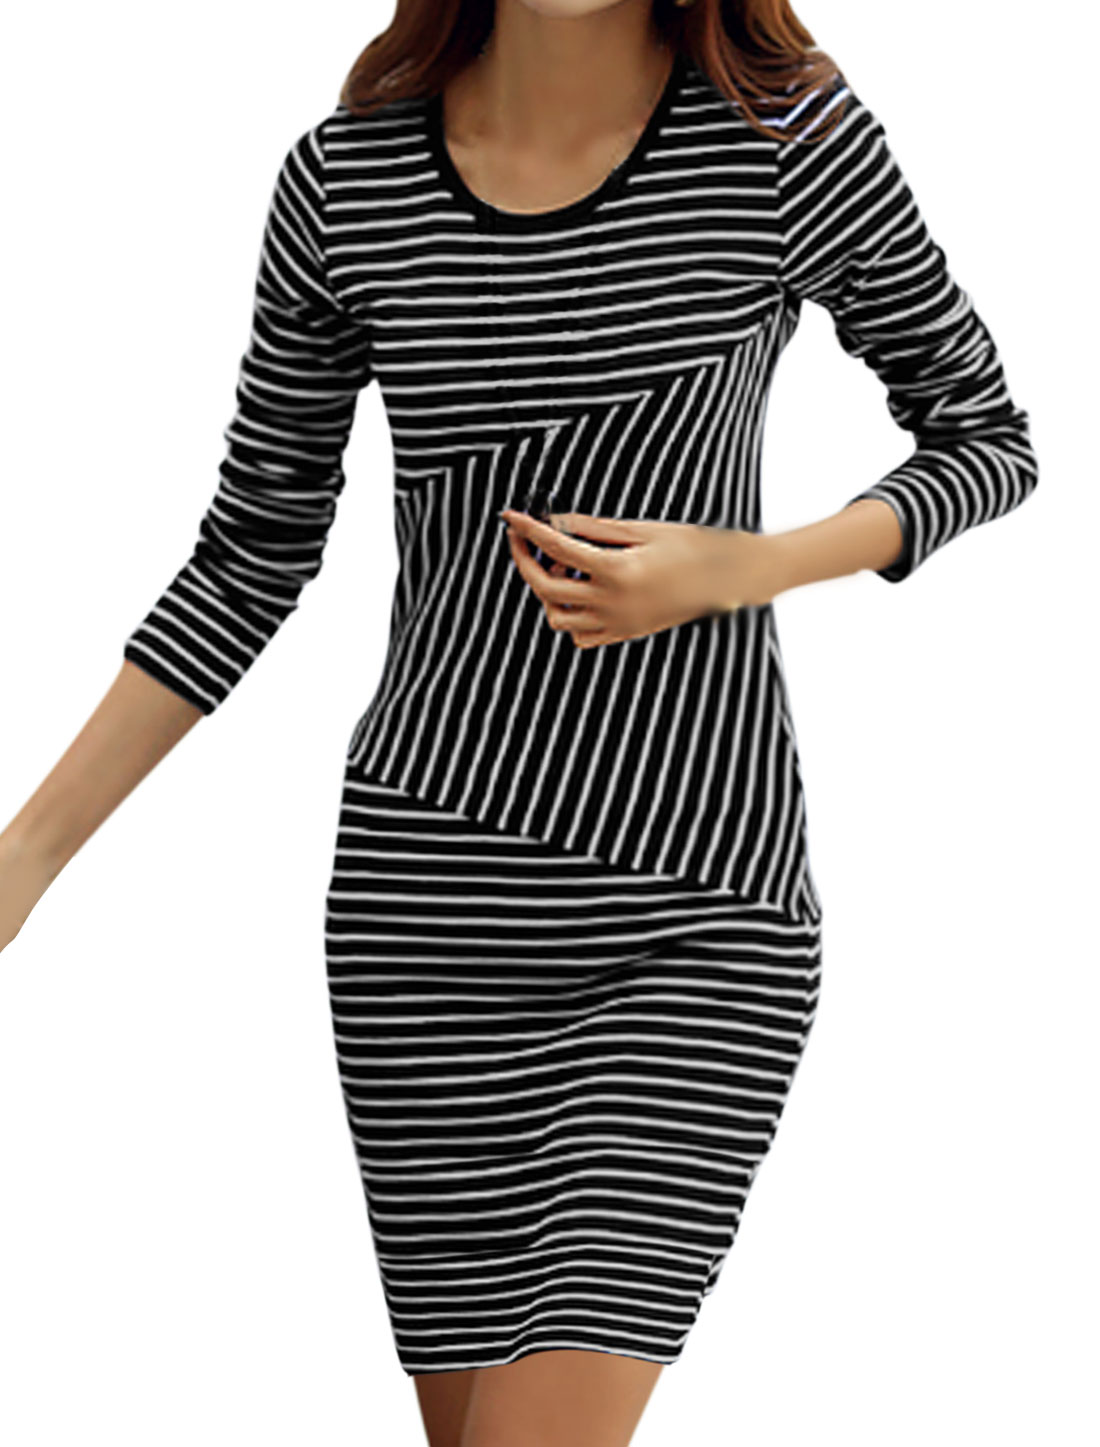 Round Neck Bar Striped Casual Sheath Dress for Women Black S